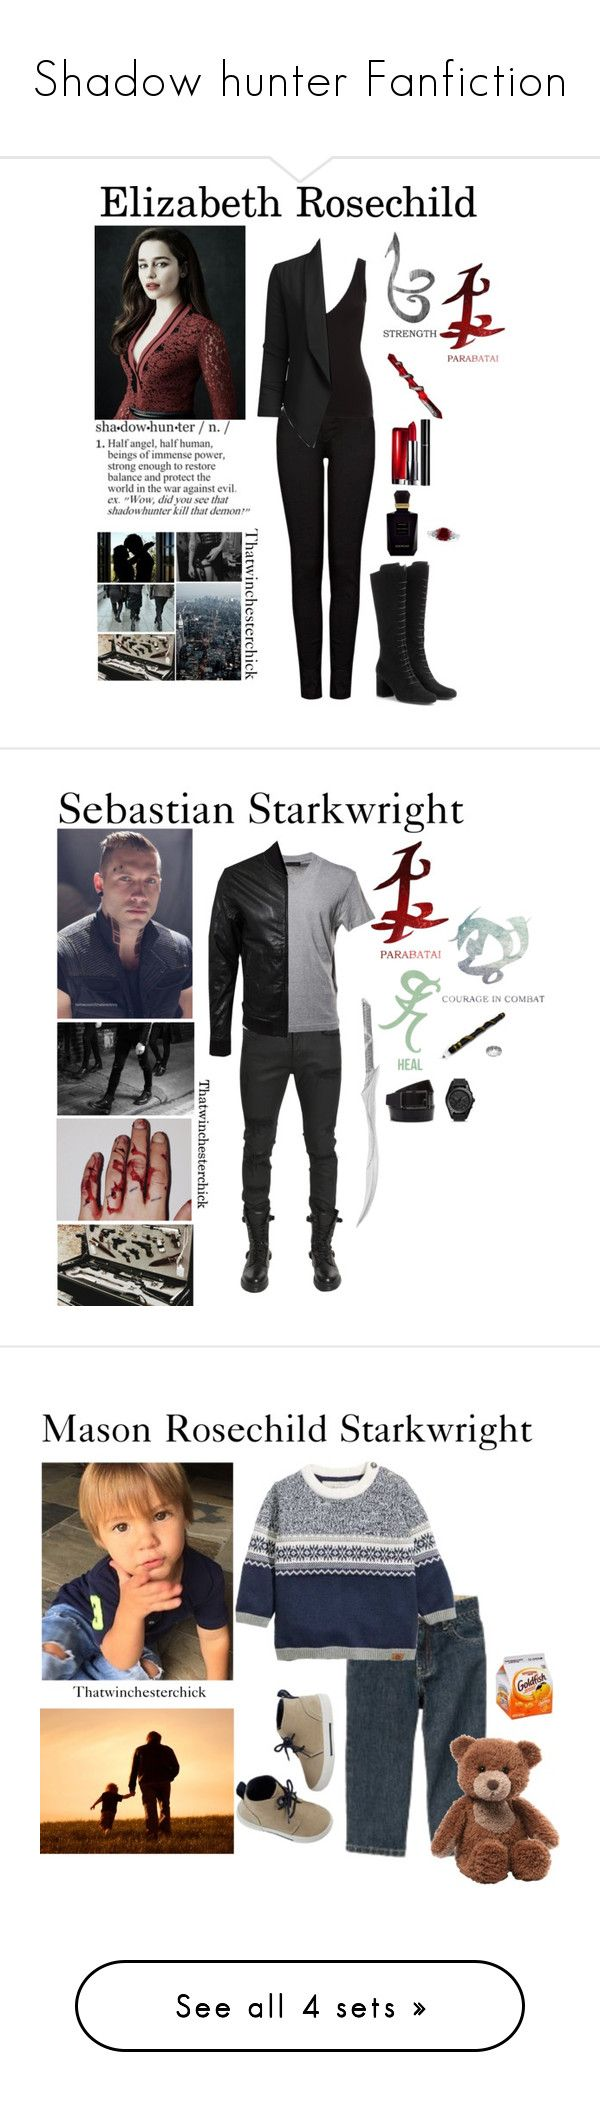 """""""Shadow hunter Fanfiction"""" by thatwinchesterchick ❤ liked on Polyvore featuring Stele, Yves Saint Laurent, J Brand, LE3NO, Maybelline, Keiko Mecheri, Chanel, BERRICLE, fanfiction and ShadowHunter"""